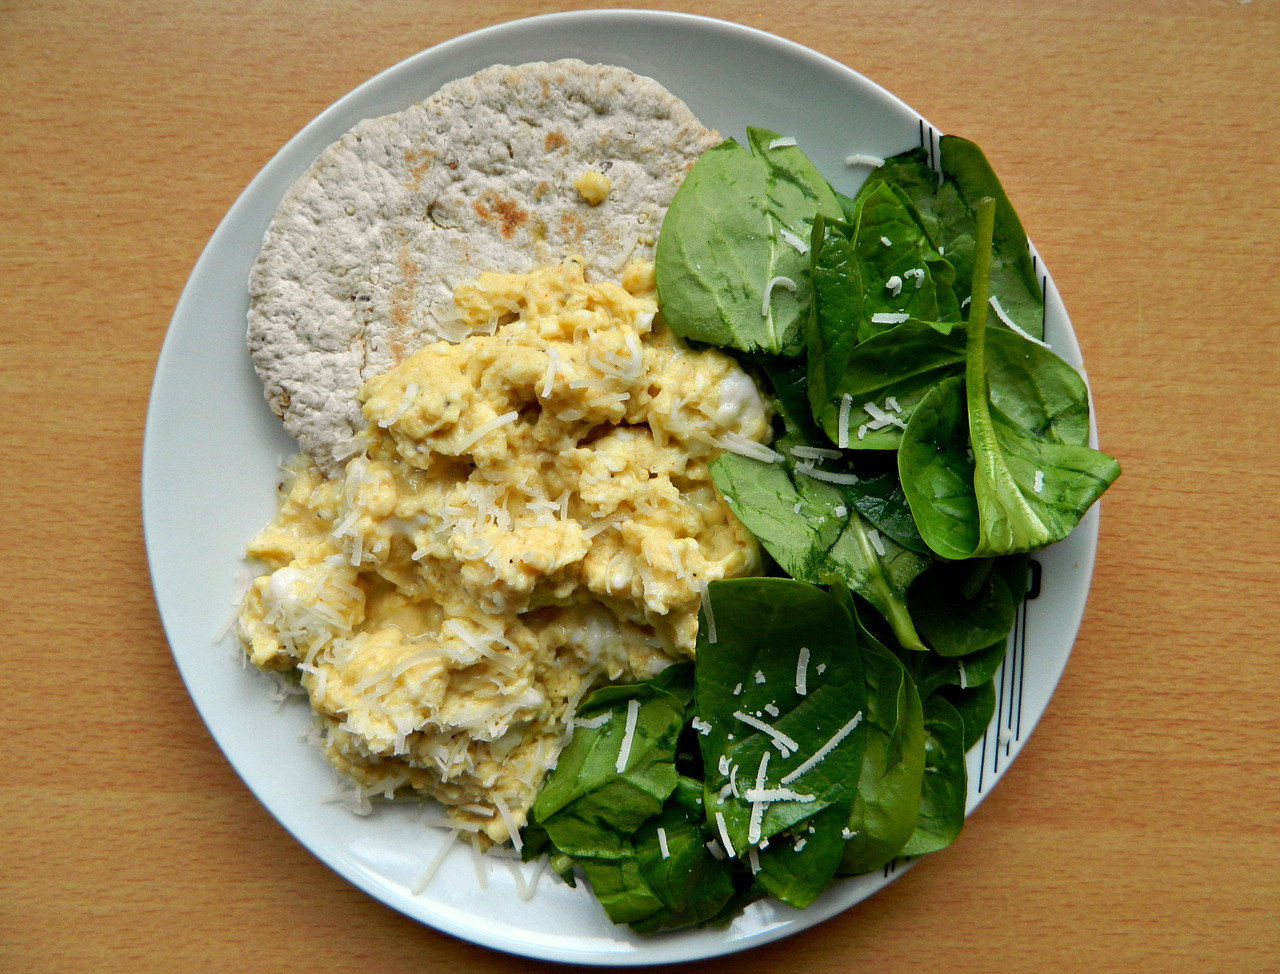 Multi-seed toasted 'Food Doctor' pitta with scrambled eggs, fresh spinach and a light sprinkling of mozzarella. (Eggs - 2 whole, 1 white, dash of soy milk, cumin, basil, black pepper and garlic powder, all cooked in a little coconut oil.)